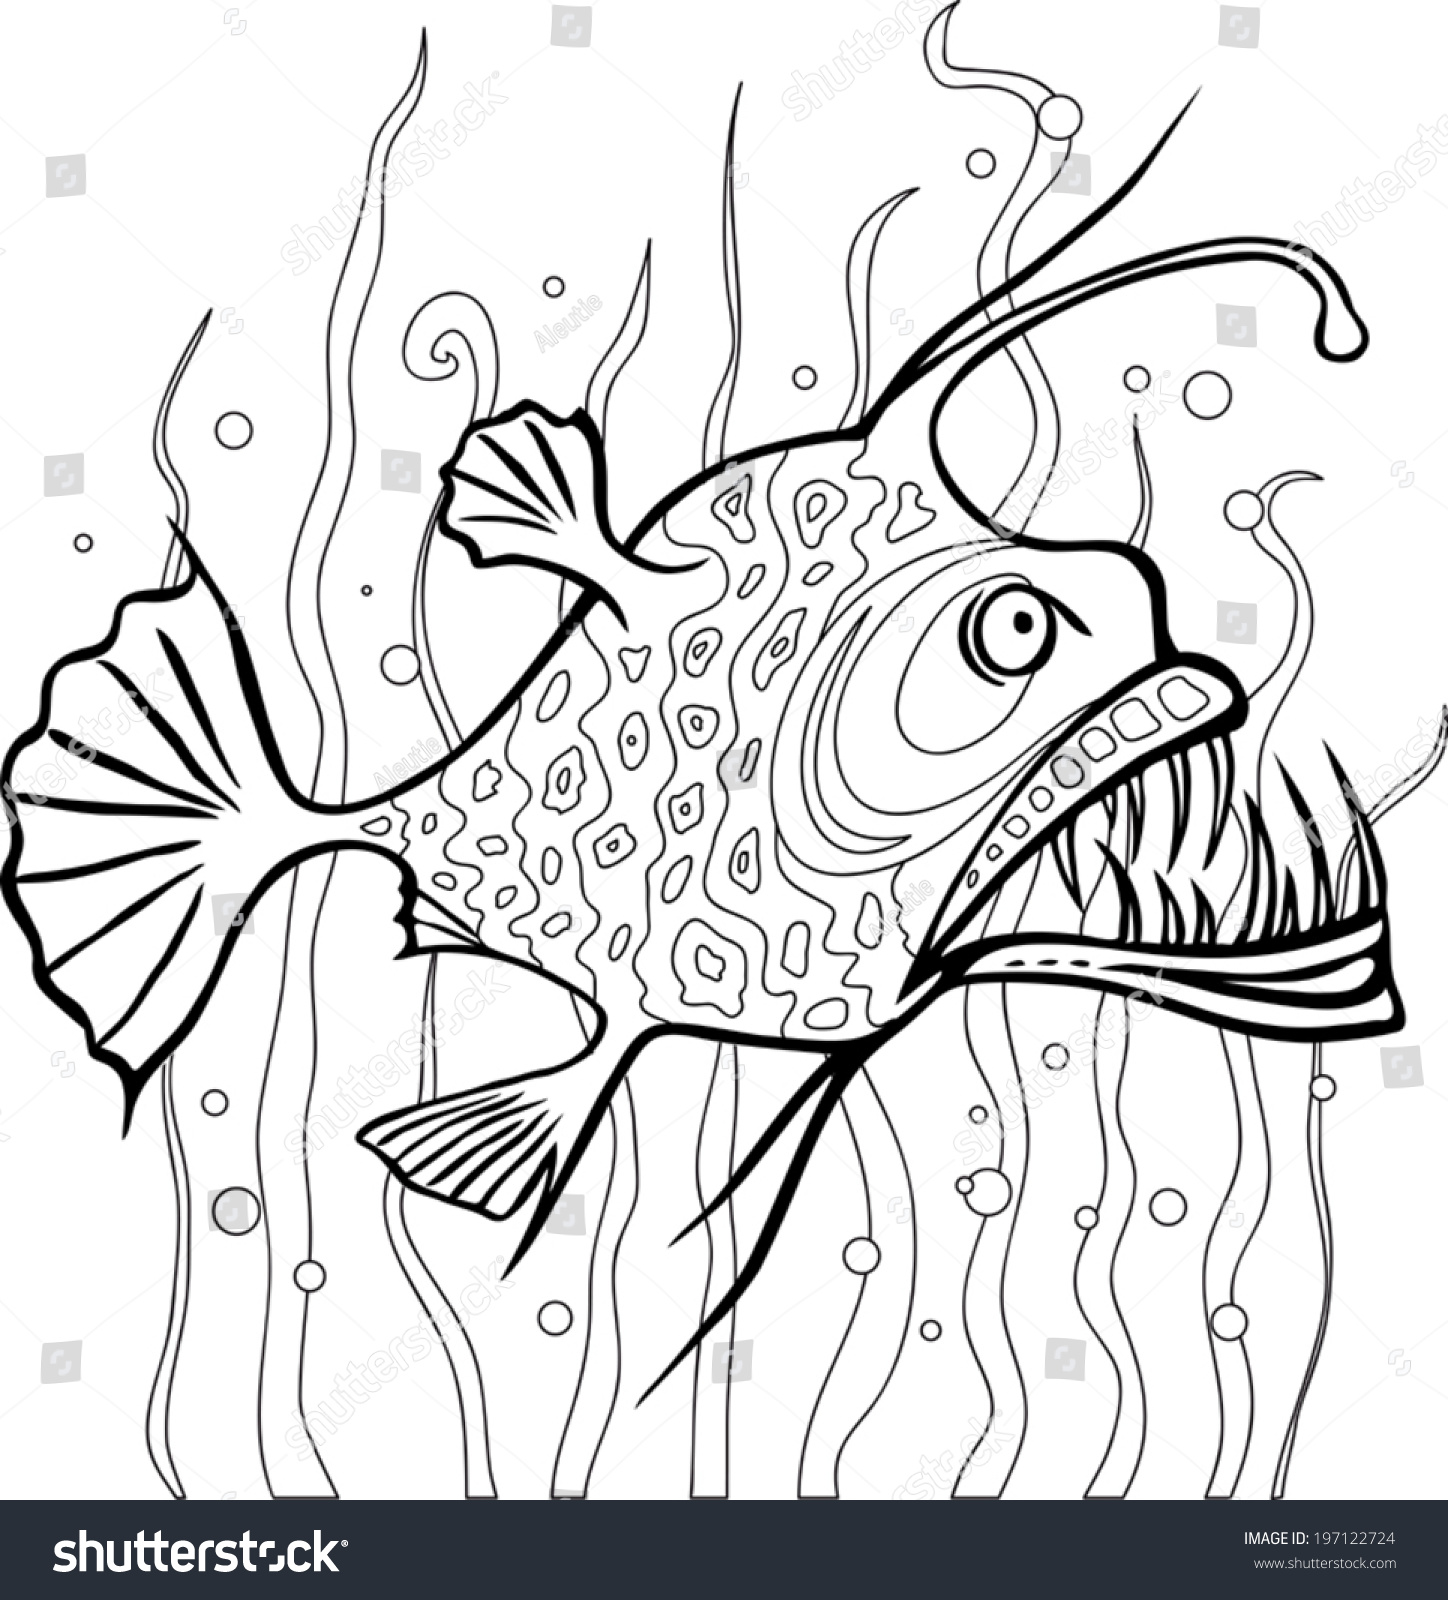 Angler fish coloring page black white stock vector for Angler fish coloring page